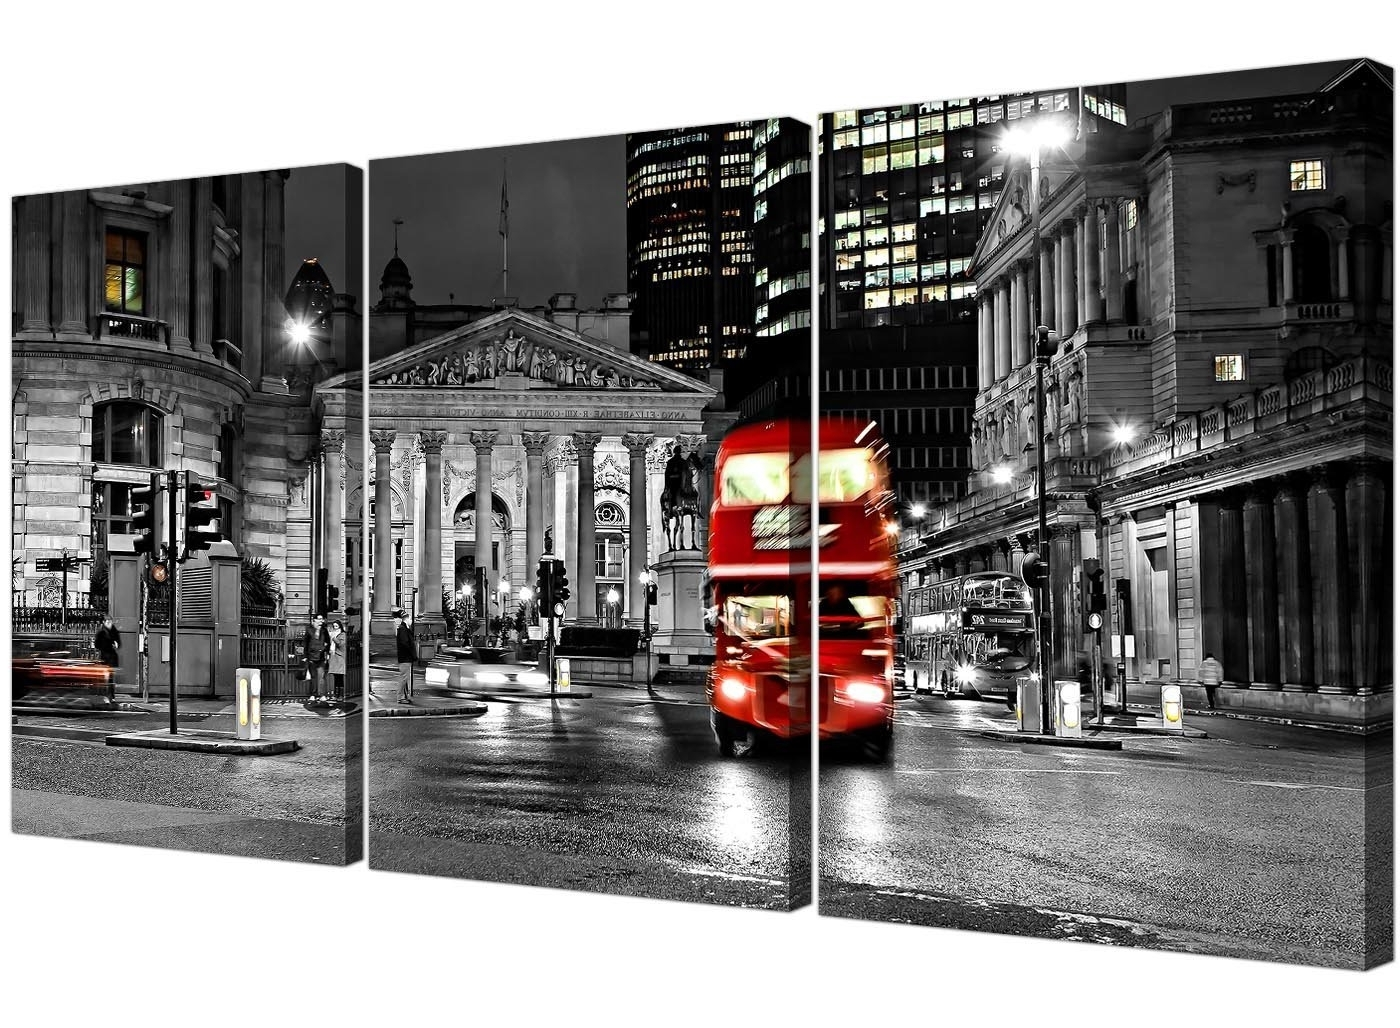 Canvas Wall Art Of London Regarding Current Red London Bus On A Black & White Background Canvas Wall Art – (View 4 of 15)